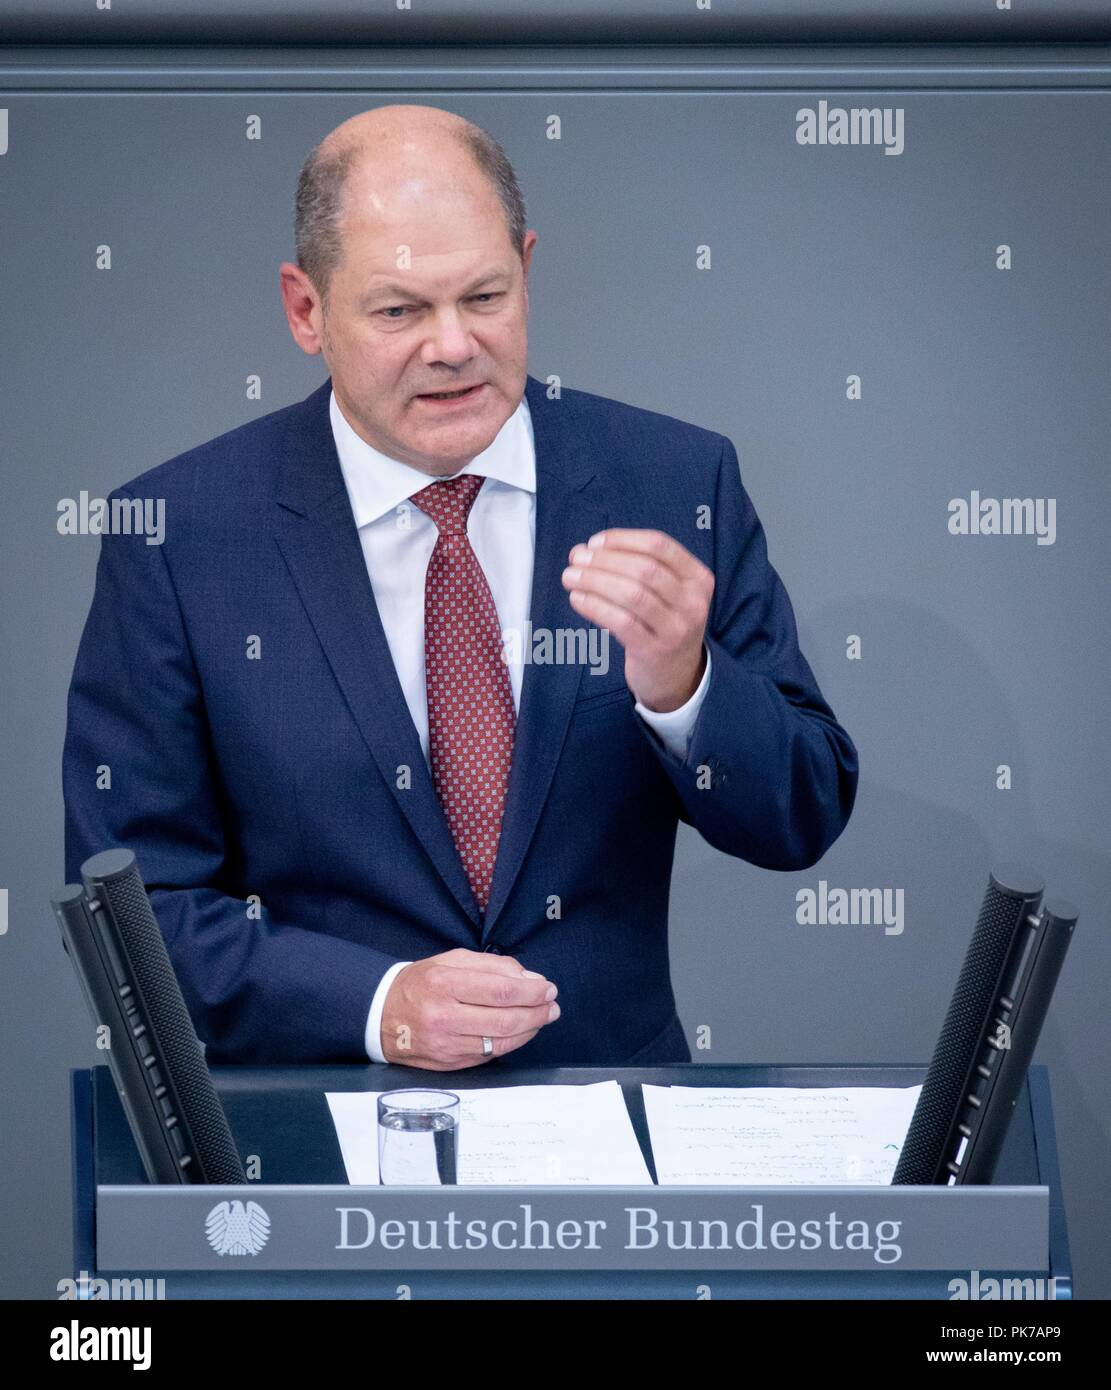 Berlin, Germany. 11 September 2018, Berlin: Olaf Scholz (SPD), Federal Minister of Finance, speaks at the plenary session in the German Bundestag. The main topic of the 47th session of the 19th legislative period is the Federal Government's draft budget 2019 and the federal budget 2018 to 2022. Photo: Bernd von Jutrczenka/dpa Credit: dpa picture alliance/Alamy Live News - Stock Image